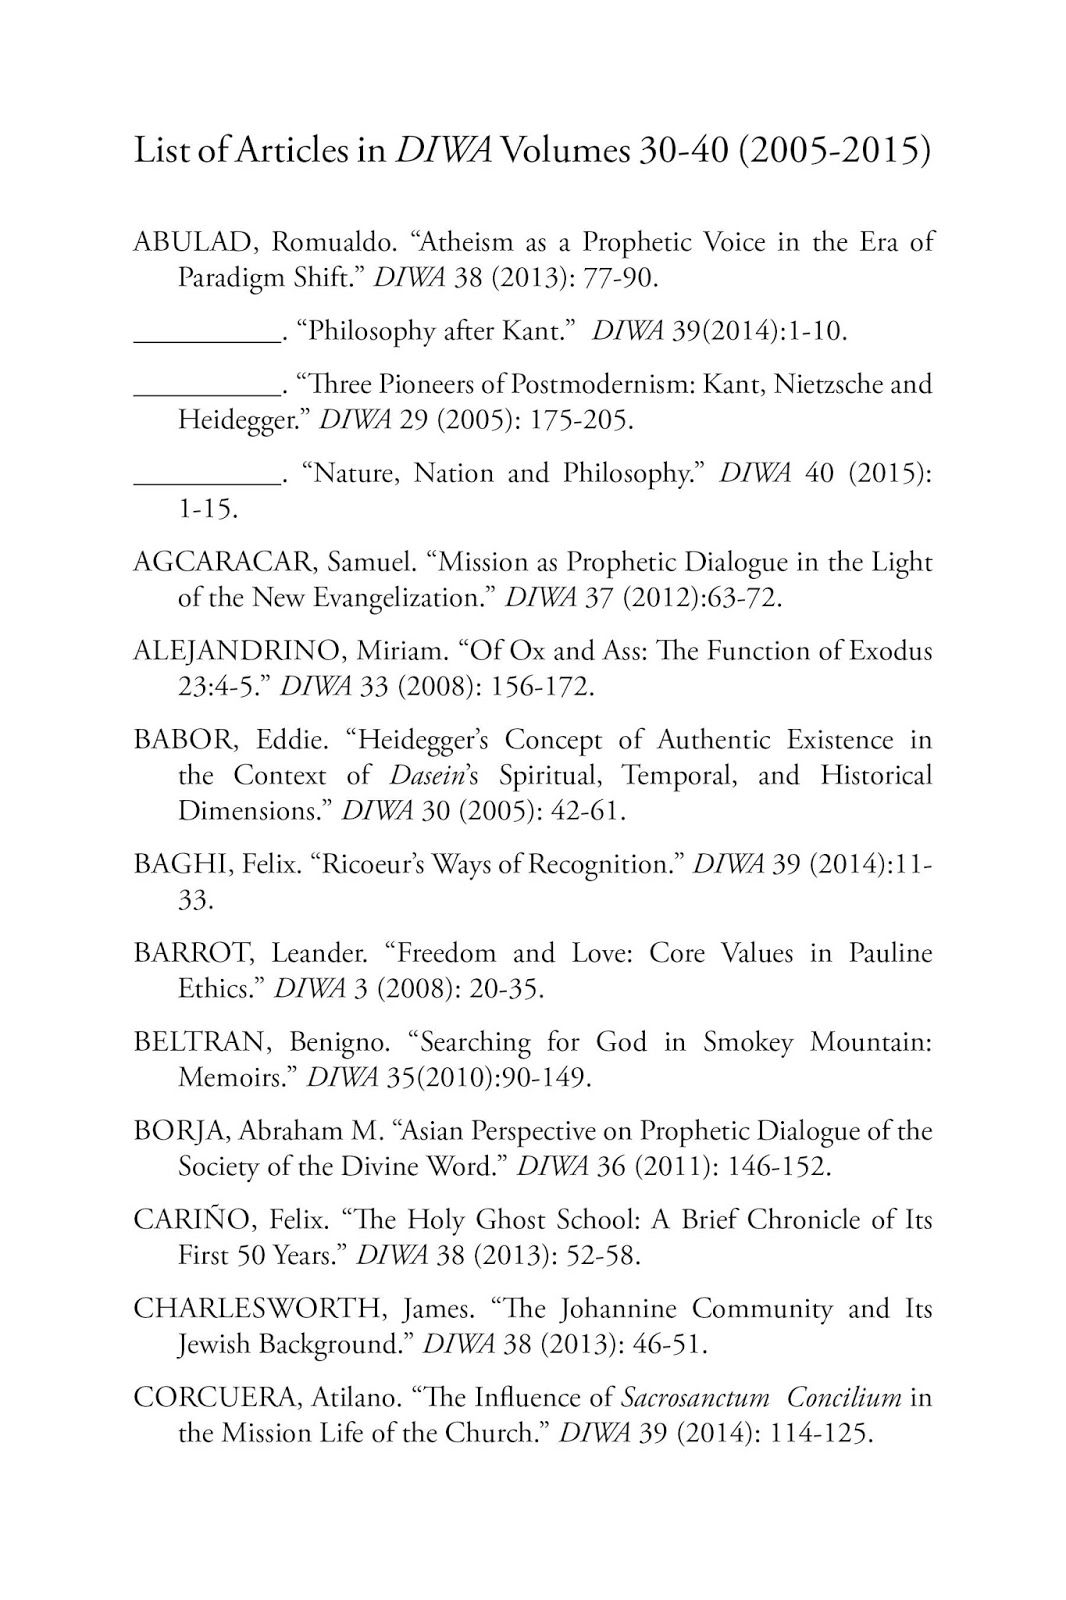 Diwa studies in philosophy and theology thursday may 12 2016 hexwebz Choice Image